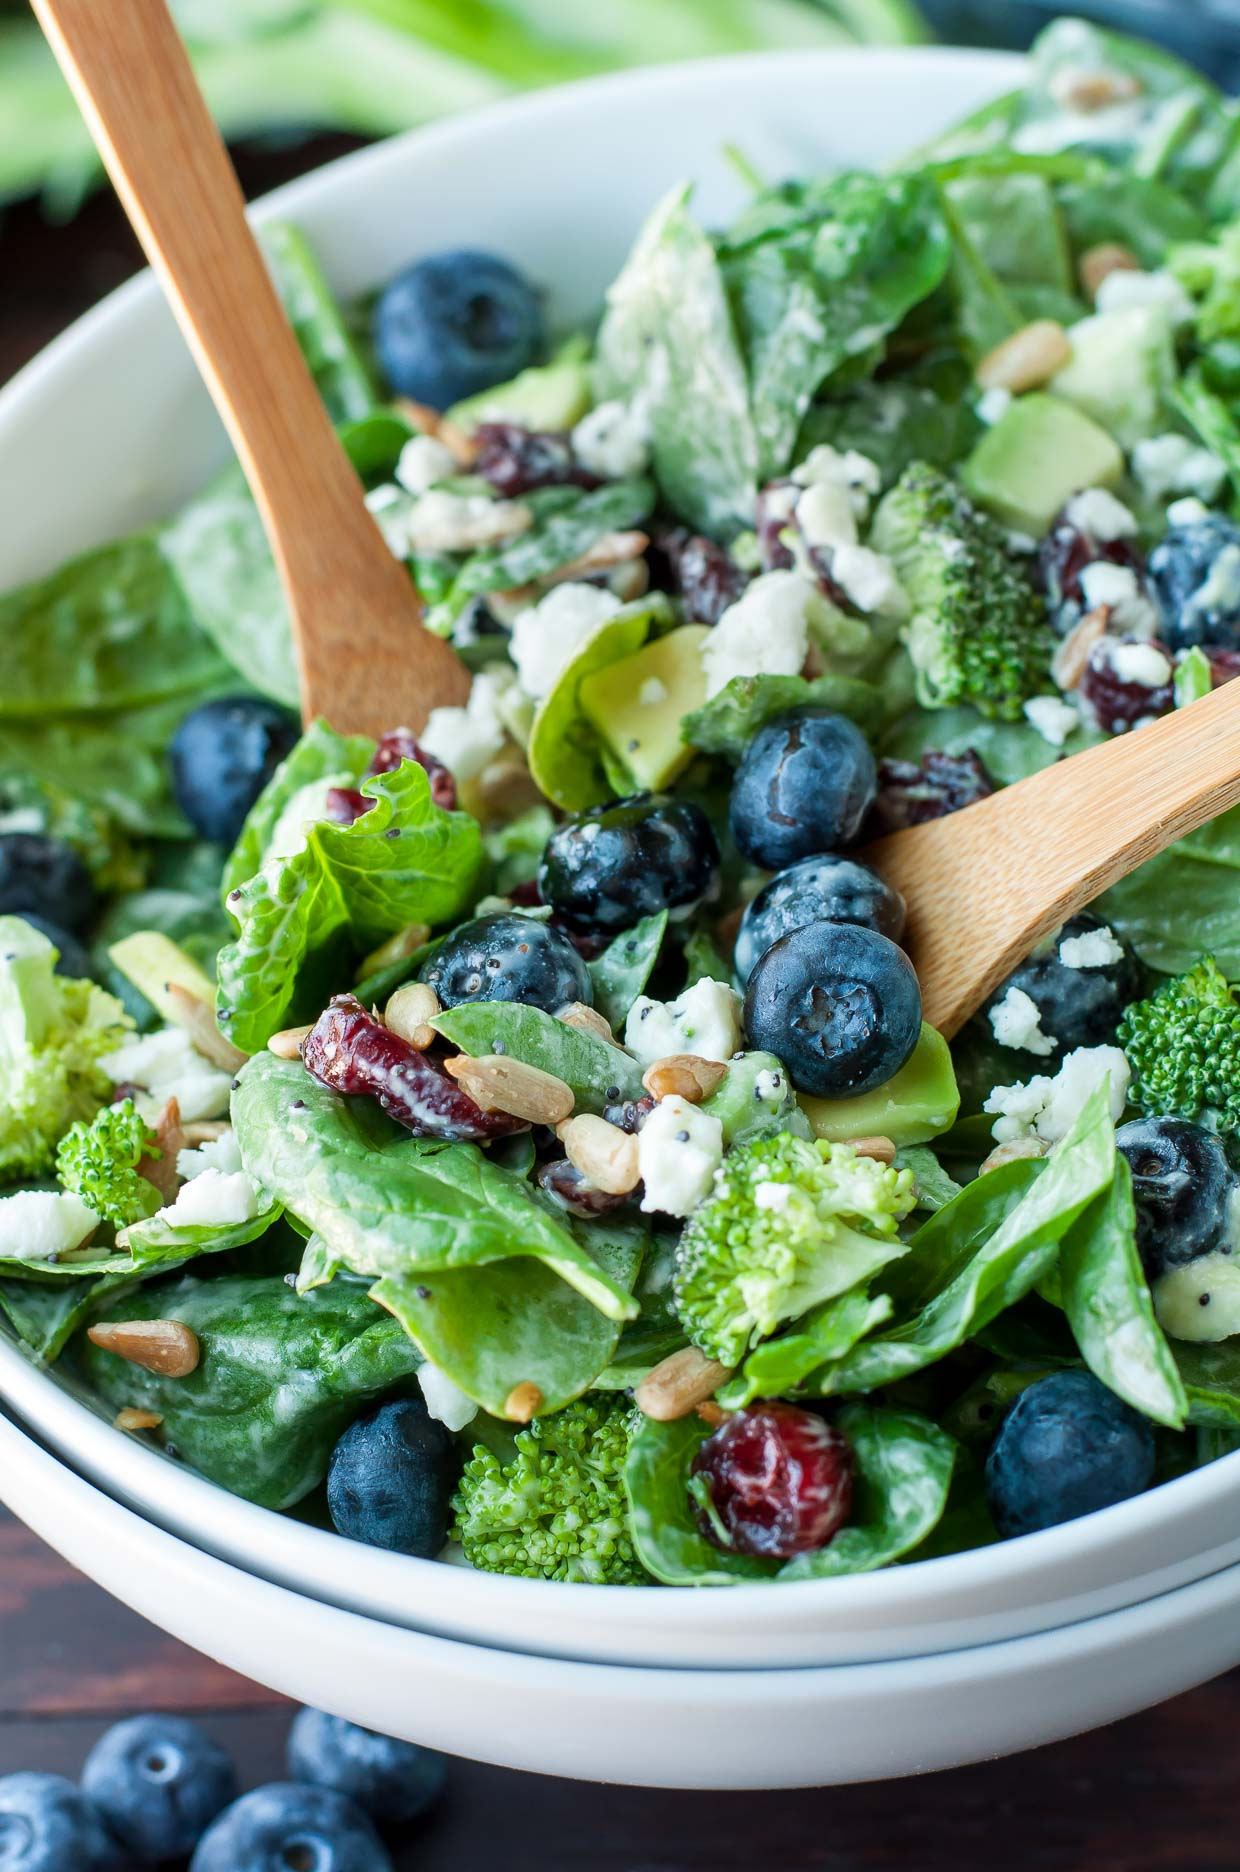 20 Easy Healthy Salad Recipes :: Blueberry Broccoli Spinach Salad with Poppyseed Ranch